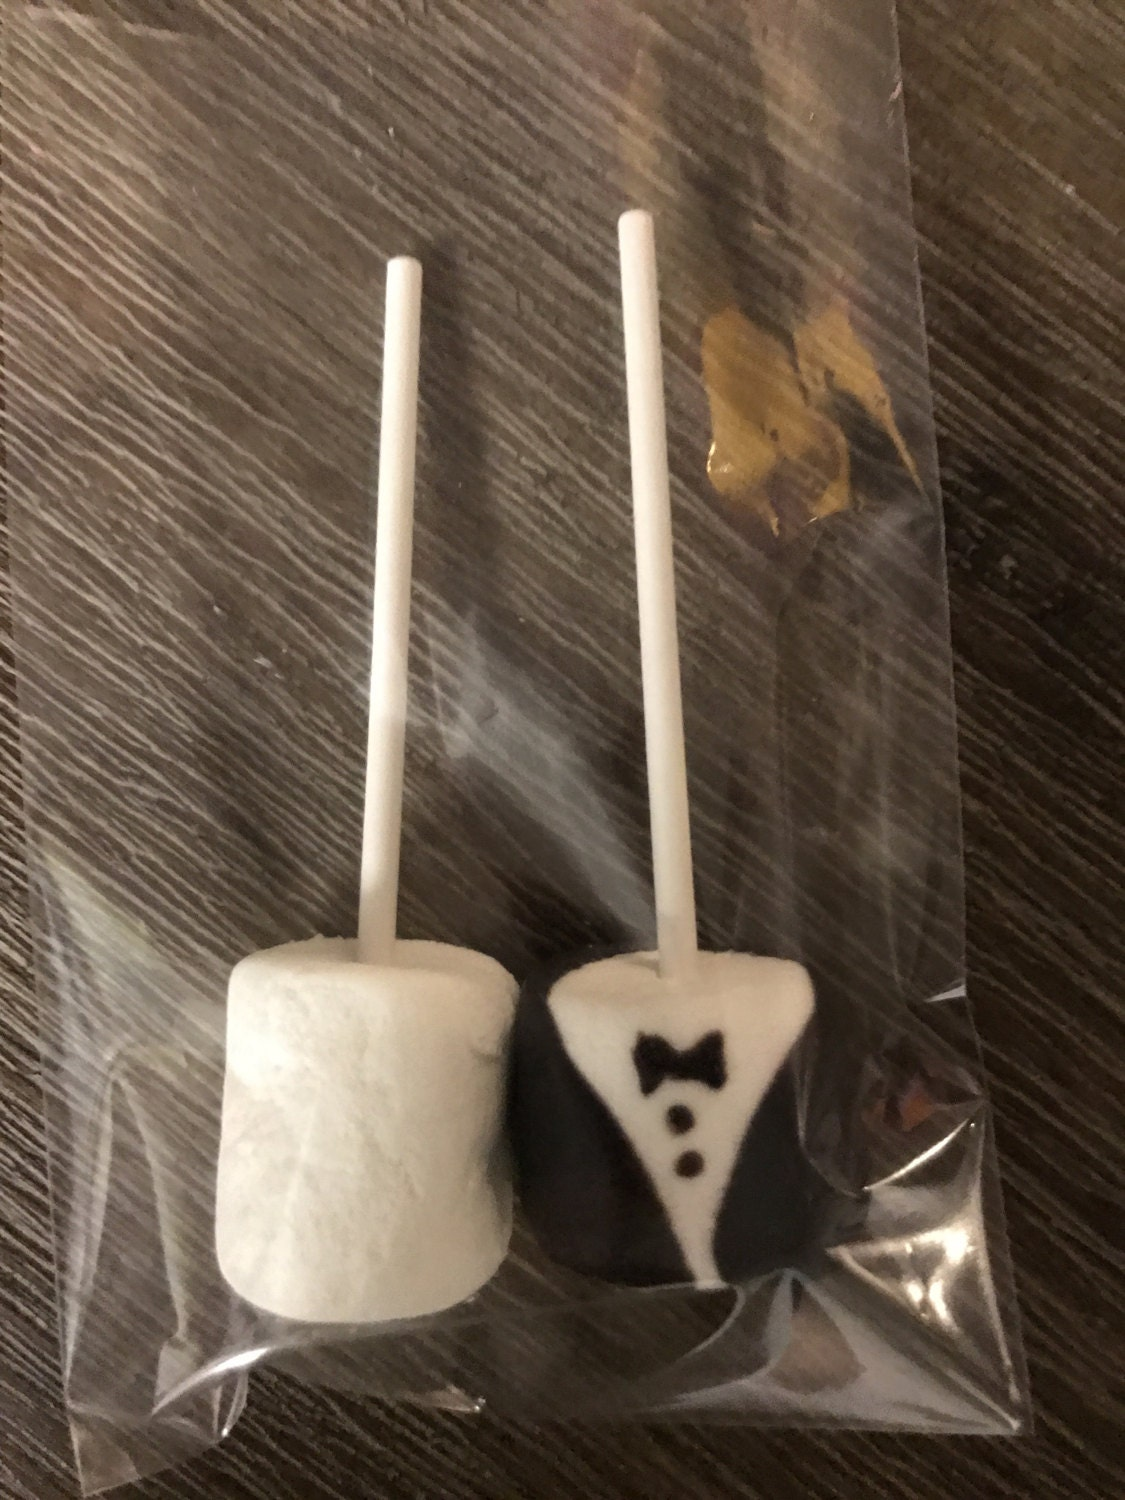 50 Bride and Groom Chocolate Covered Marshmallow bridal wedding favors